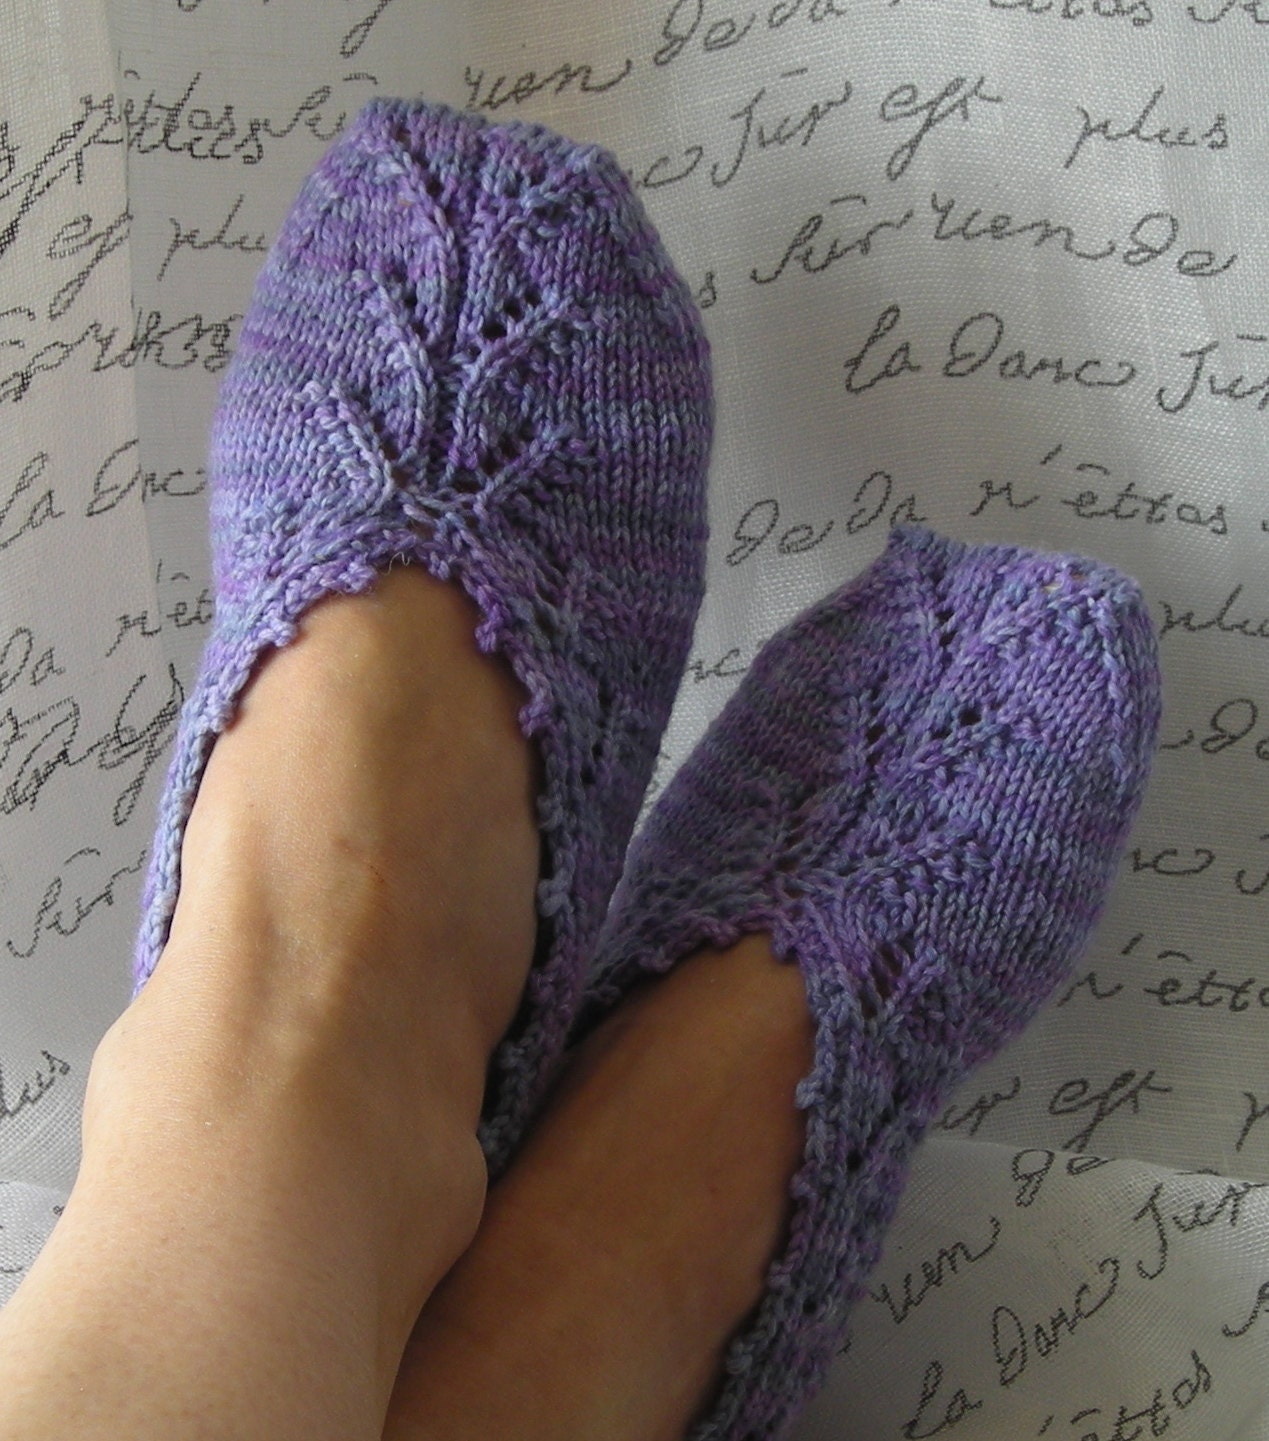 Knitting Patterns Bed Socks Easy : Knitting Pattern PDF slipper socks Chausettes de Lavande